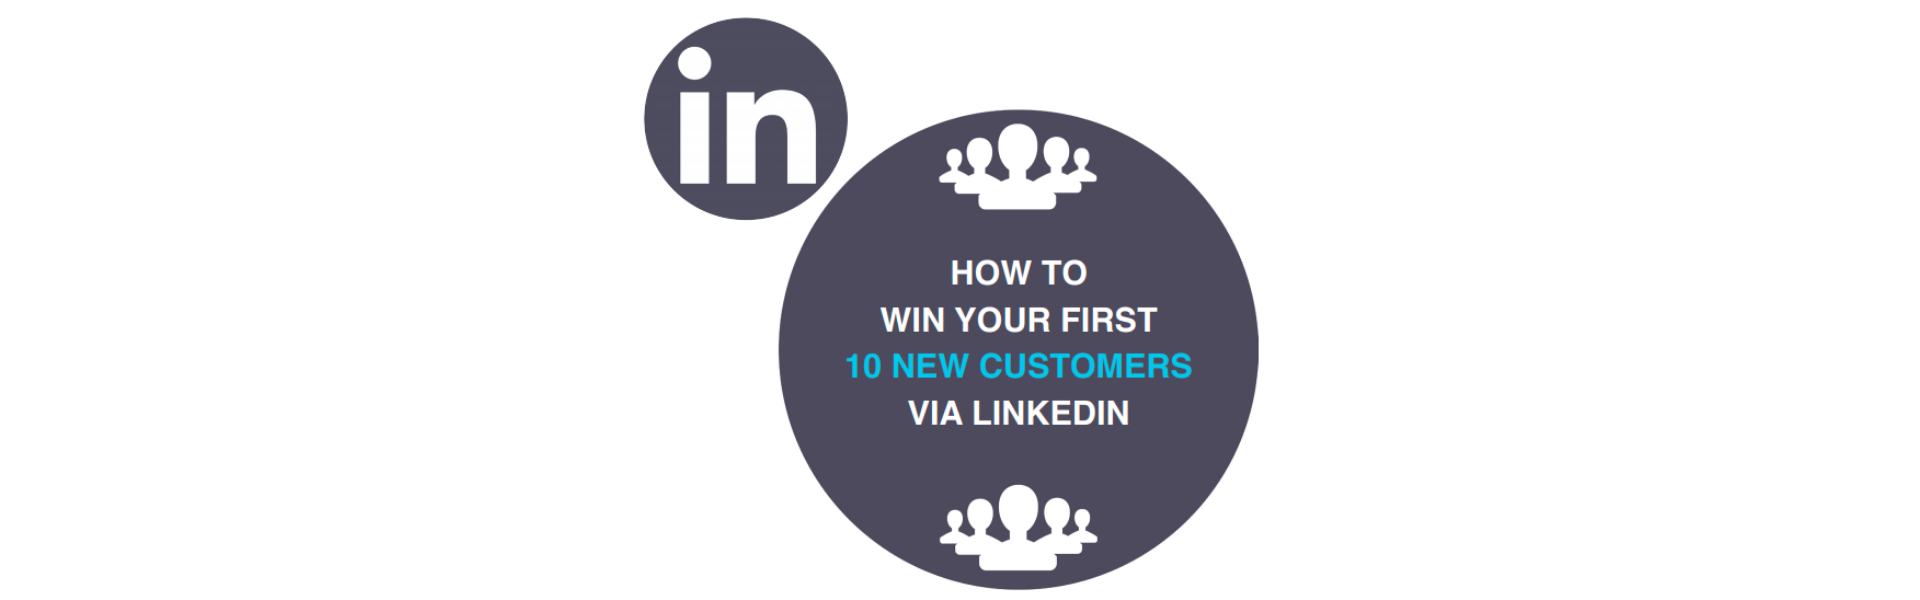 how to win on LinkedIn, How to win your first 10 new customers on LinkedIn